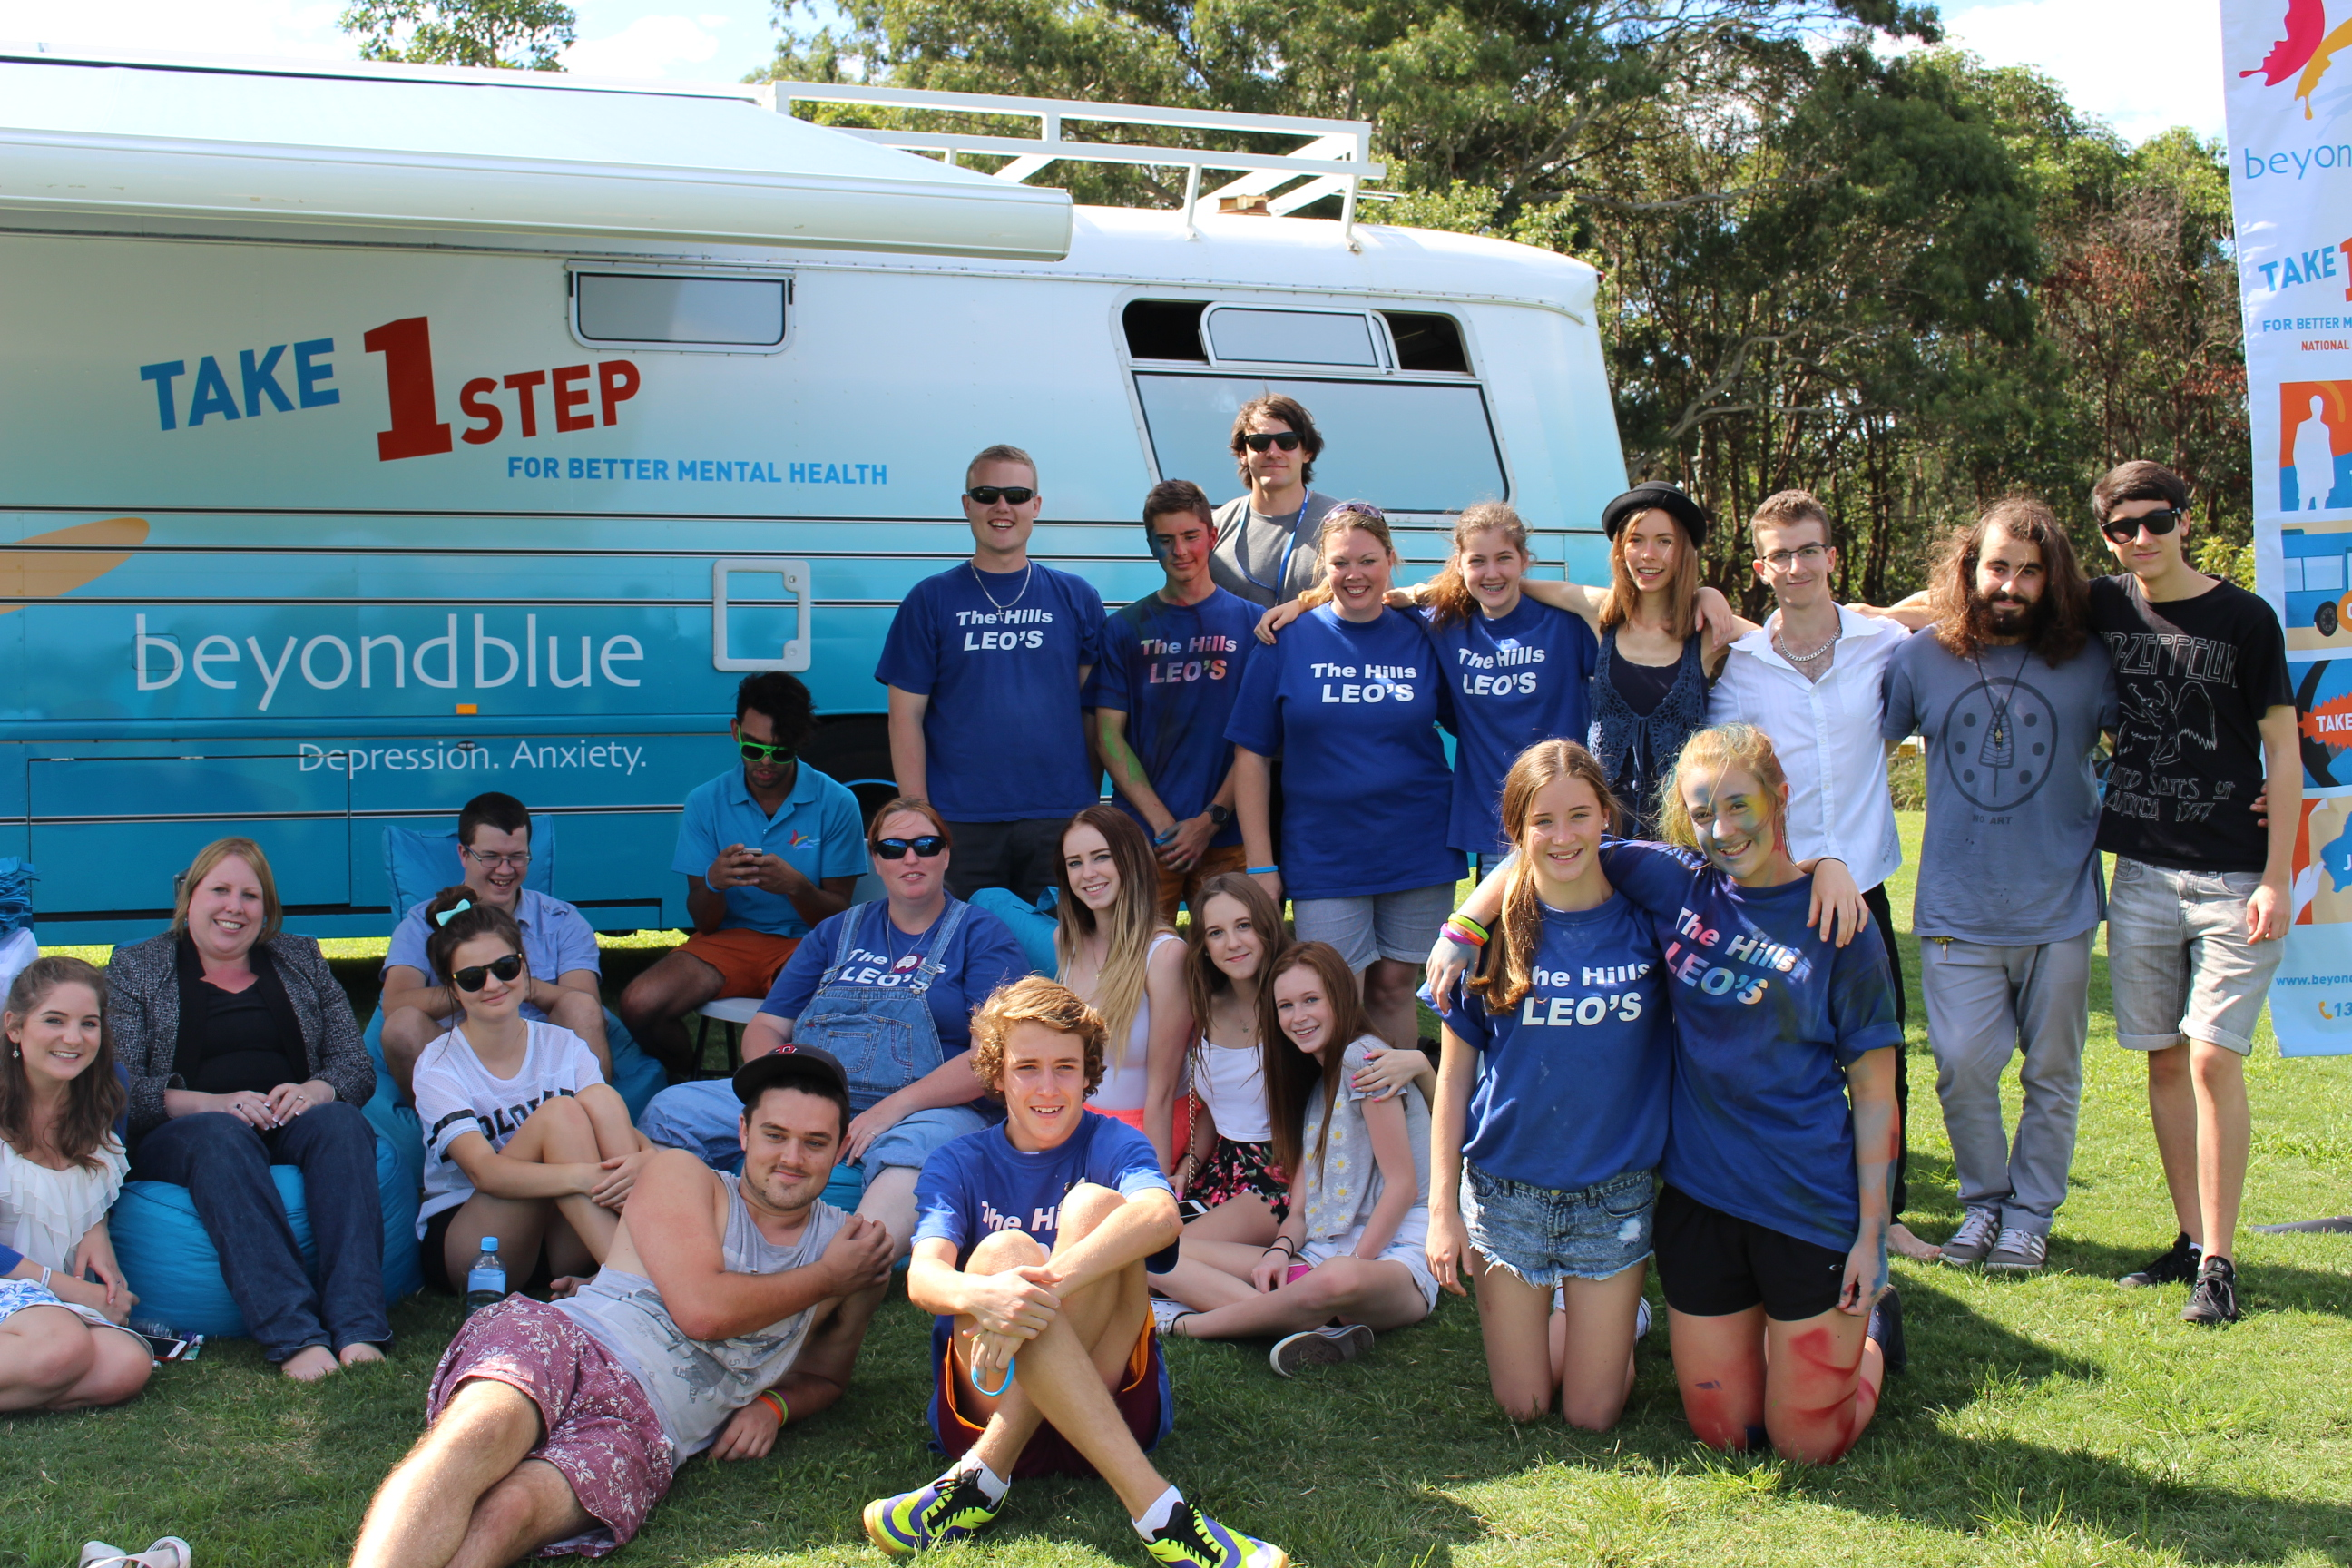 The Hills Leo Club members in Baulkham Hills.